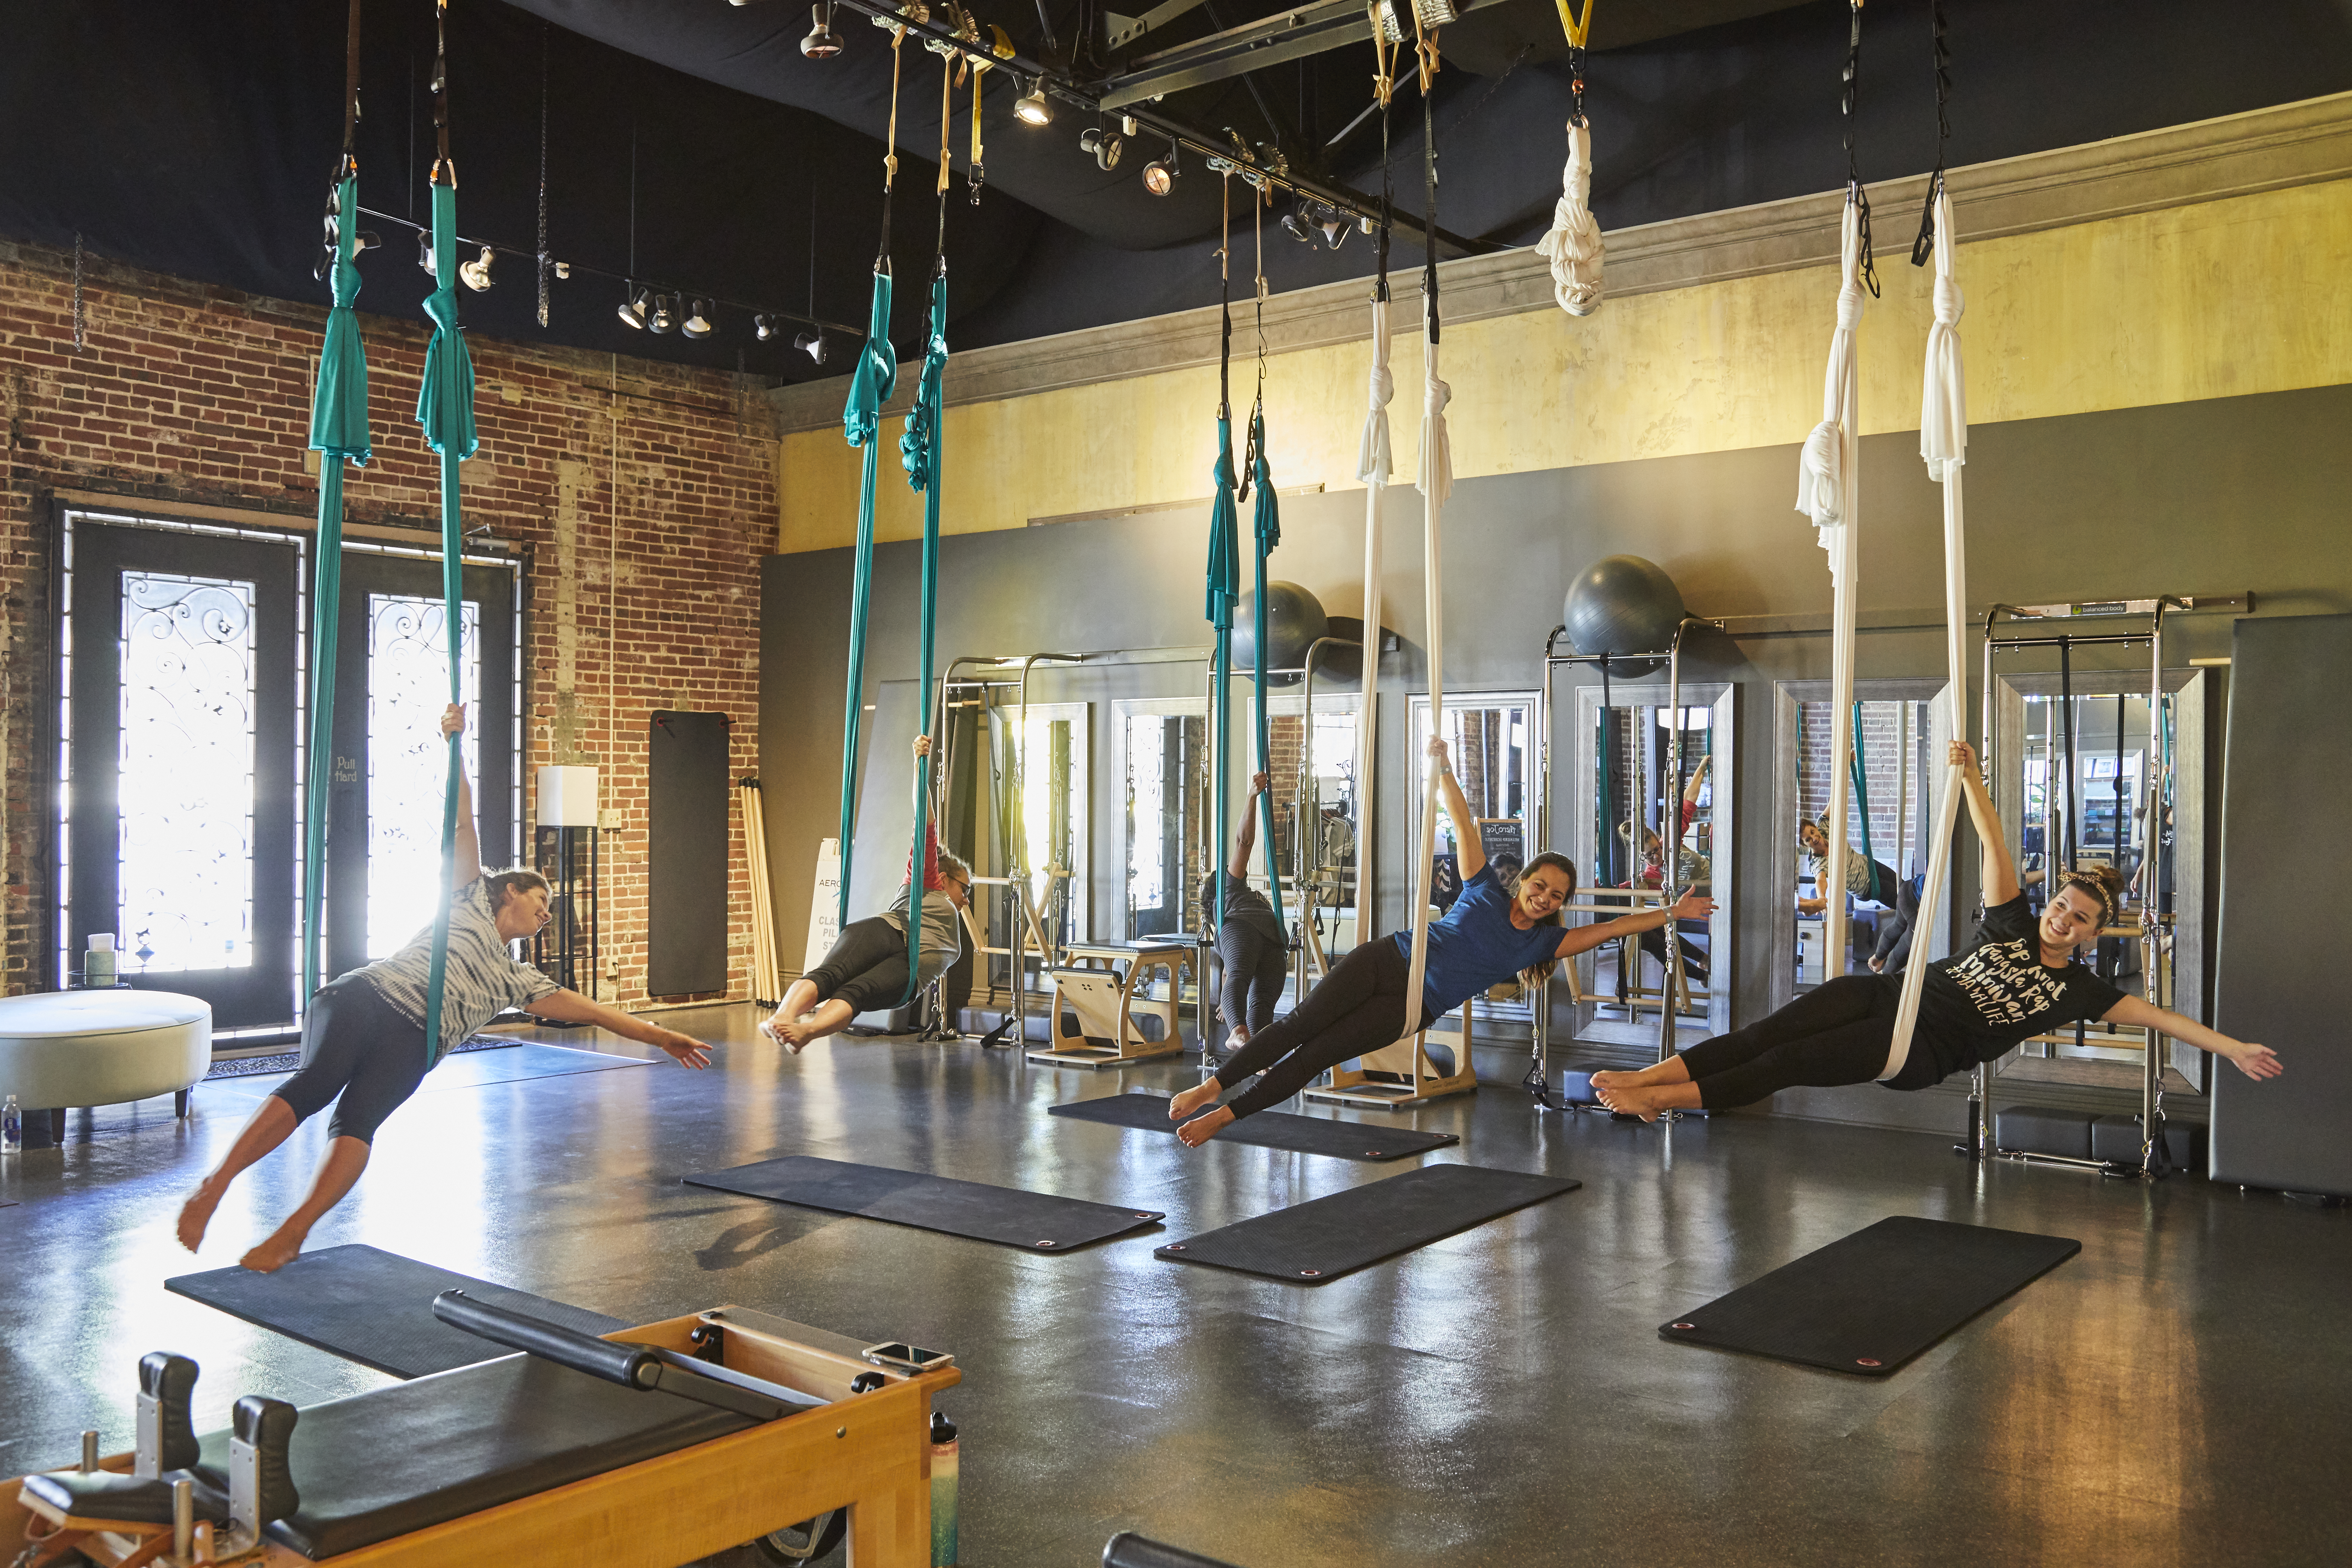 Get in shape at one of these 10 Birmingham fitness studios - al com